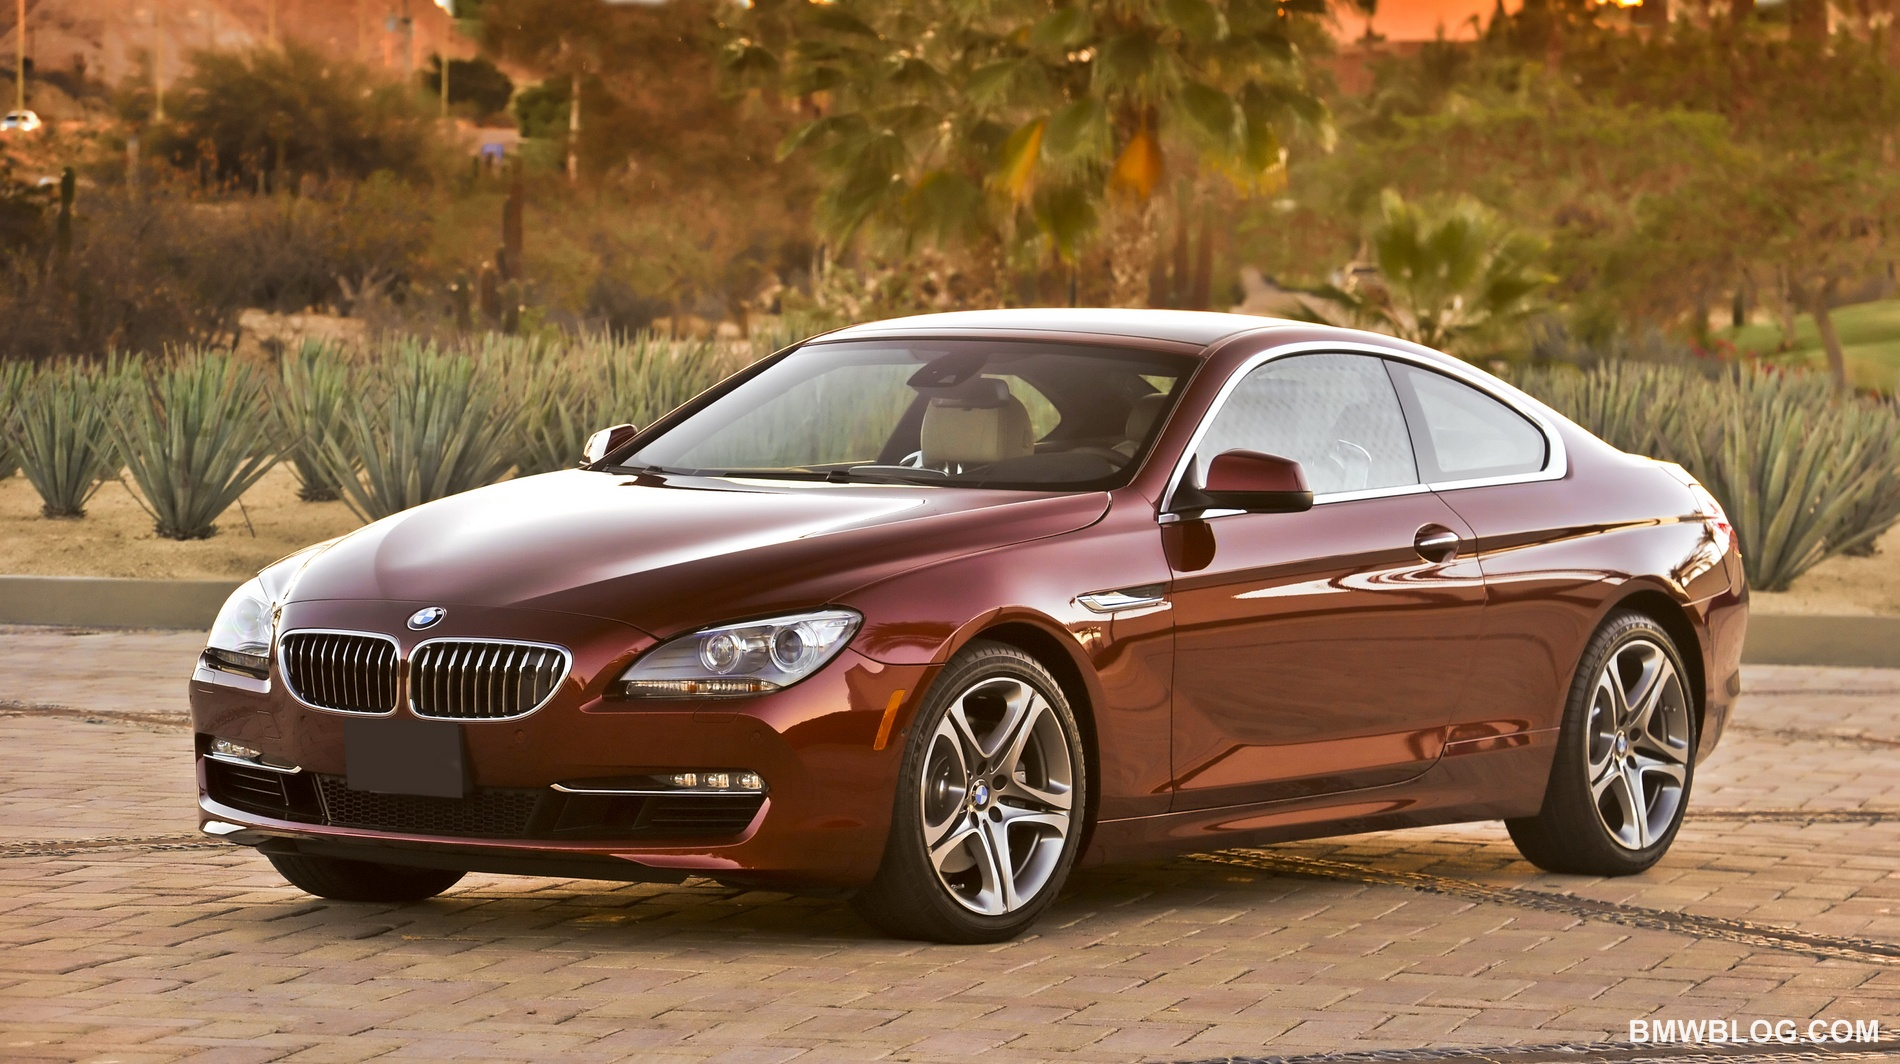 Bmw 650i Gran Coupe Review >> Next generation G15 BMW 6 Series will be lighter and sportier